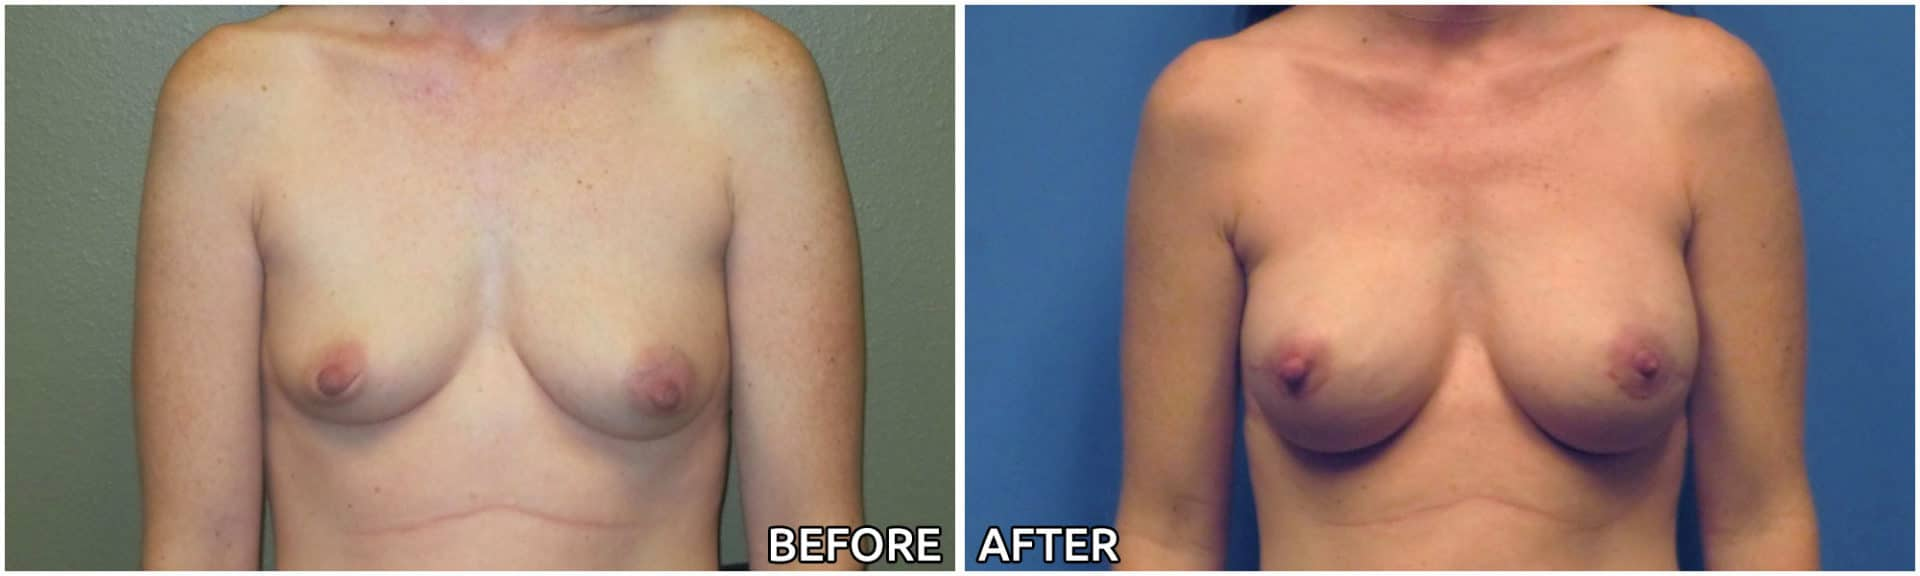 breast-reconstruction4